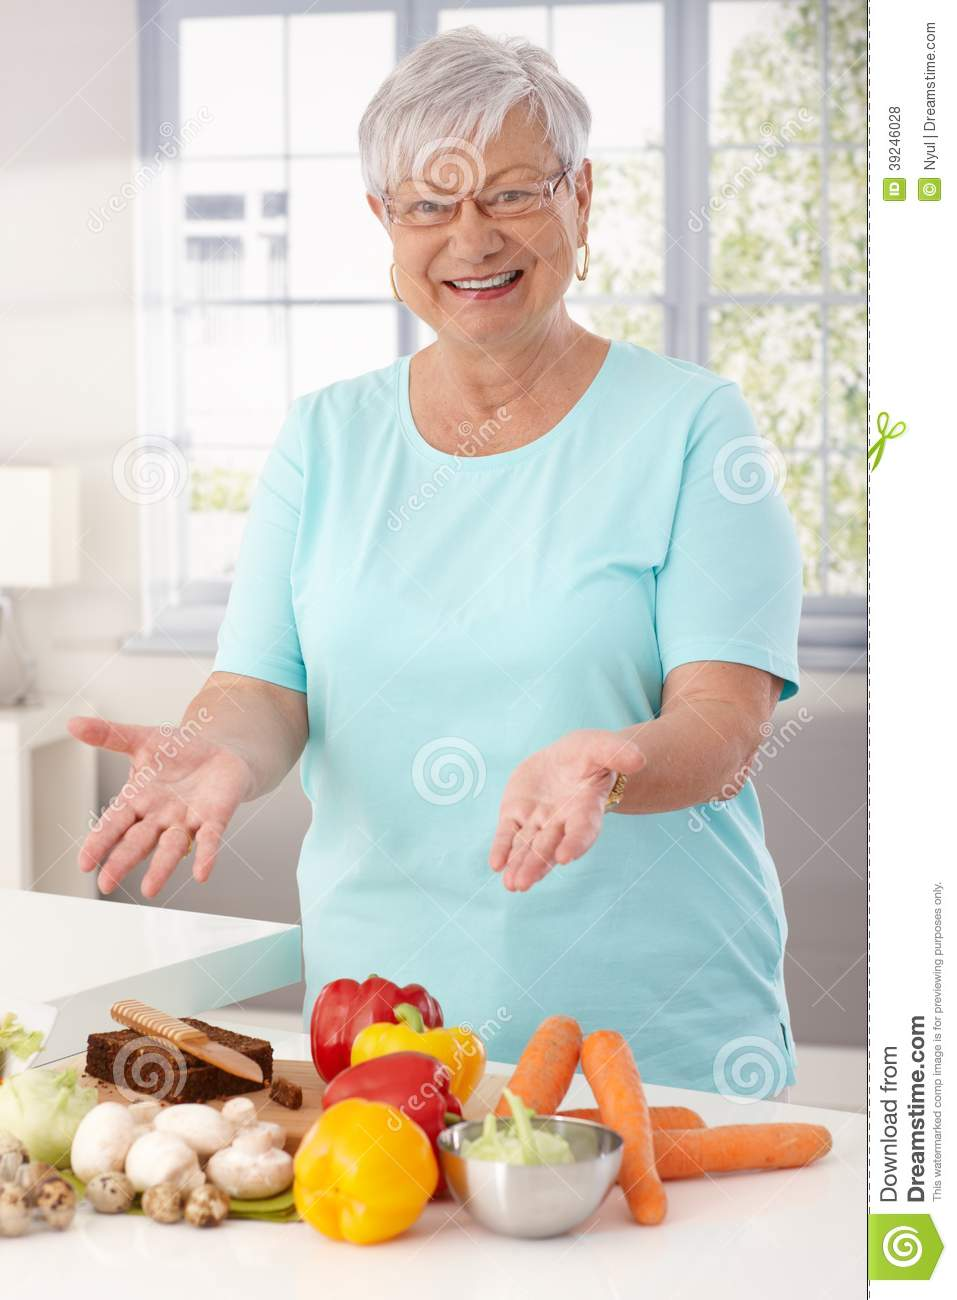 Happy Granny Preparing Healthy Food Stock Photo - Image of aged ...